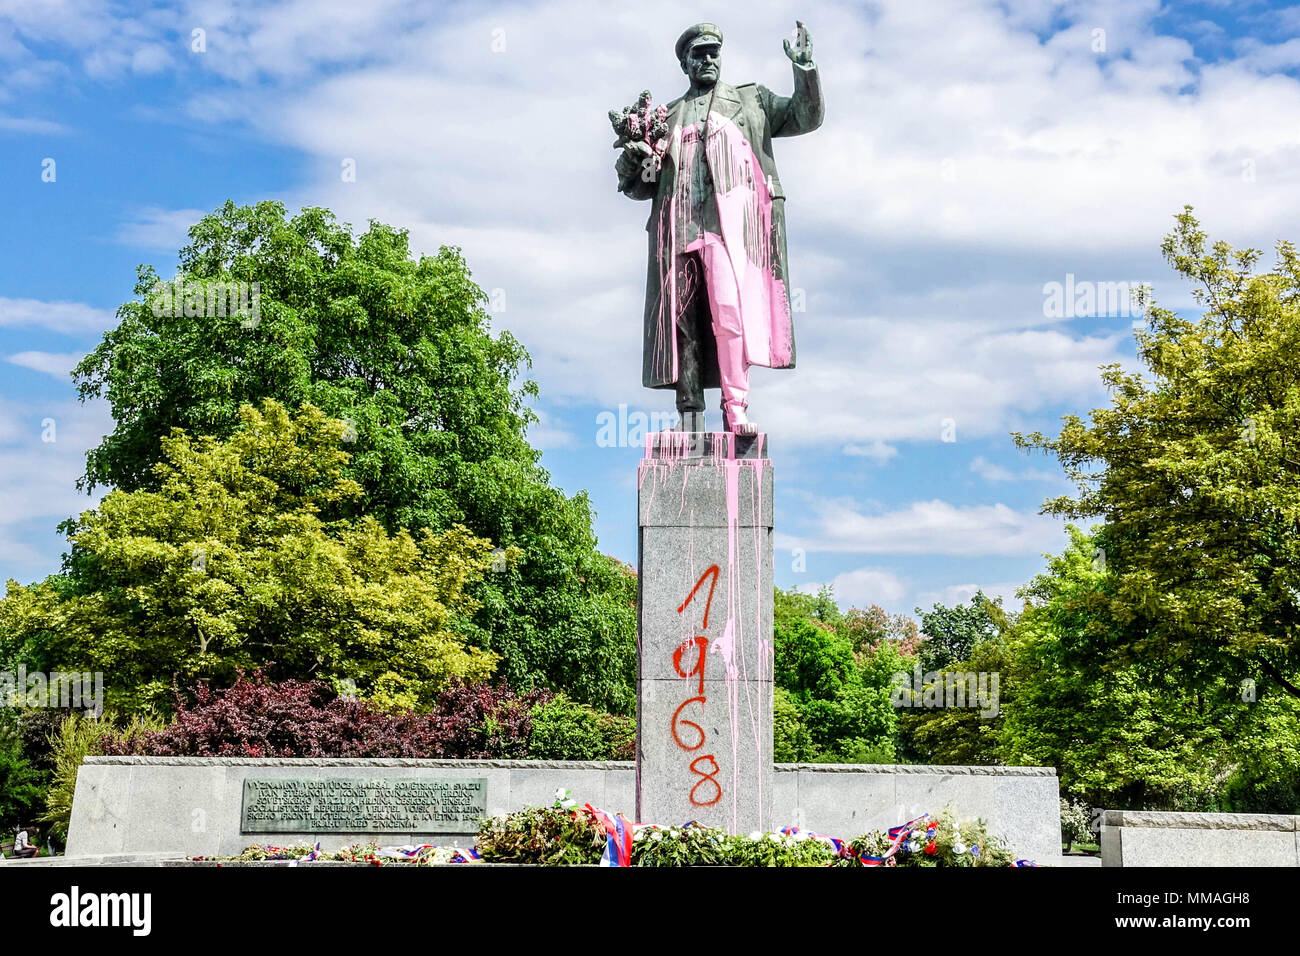 Statue of the Soviet Marshal Konev painted in pink color and inscription 1968. Dejvice, Prague, Czech Republic - Stock Image